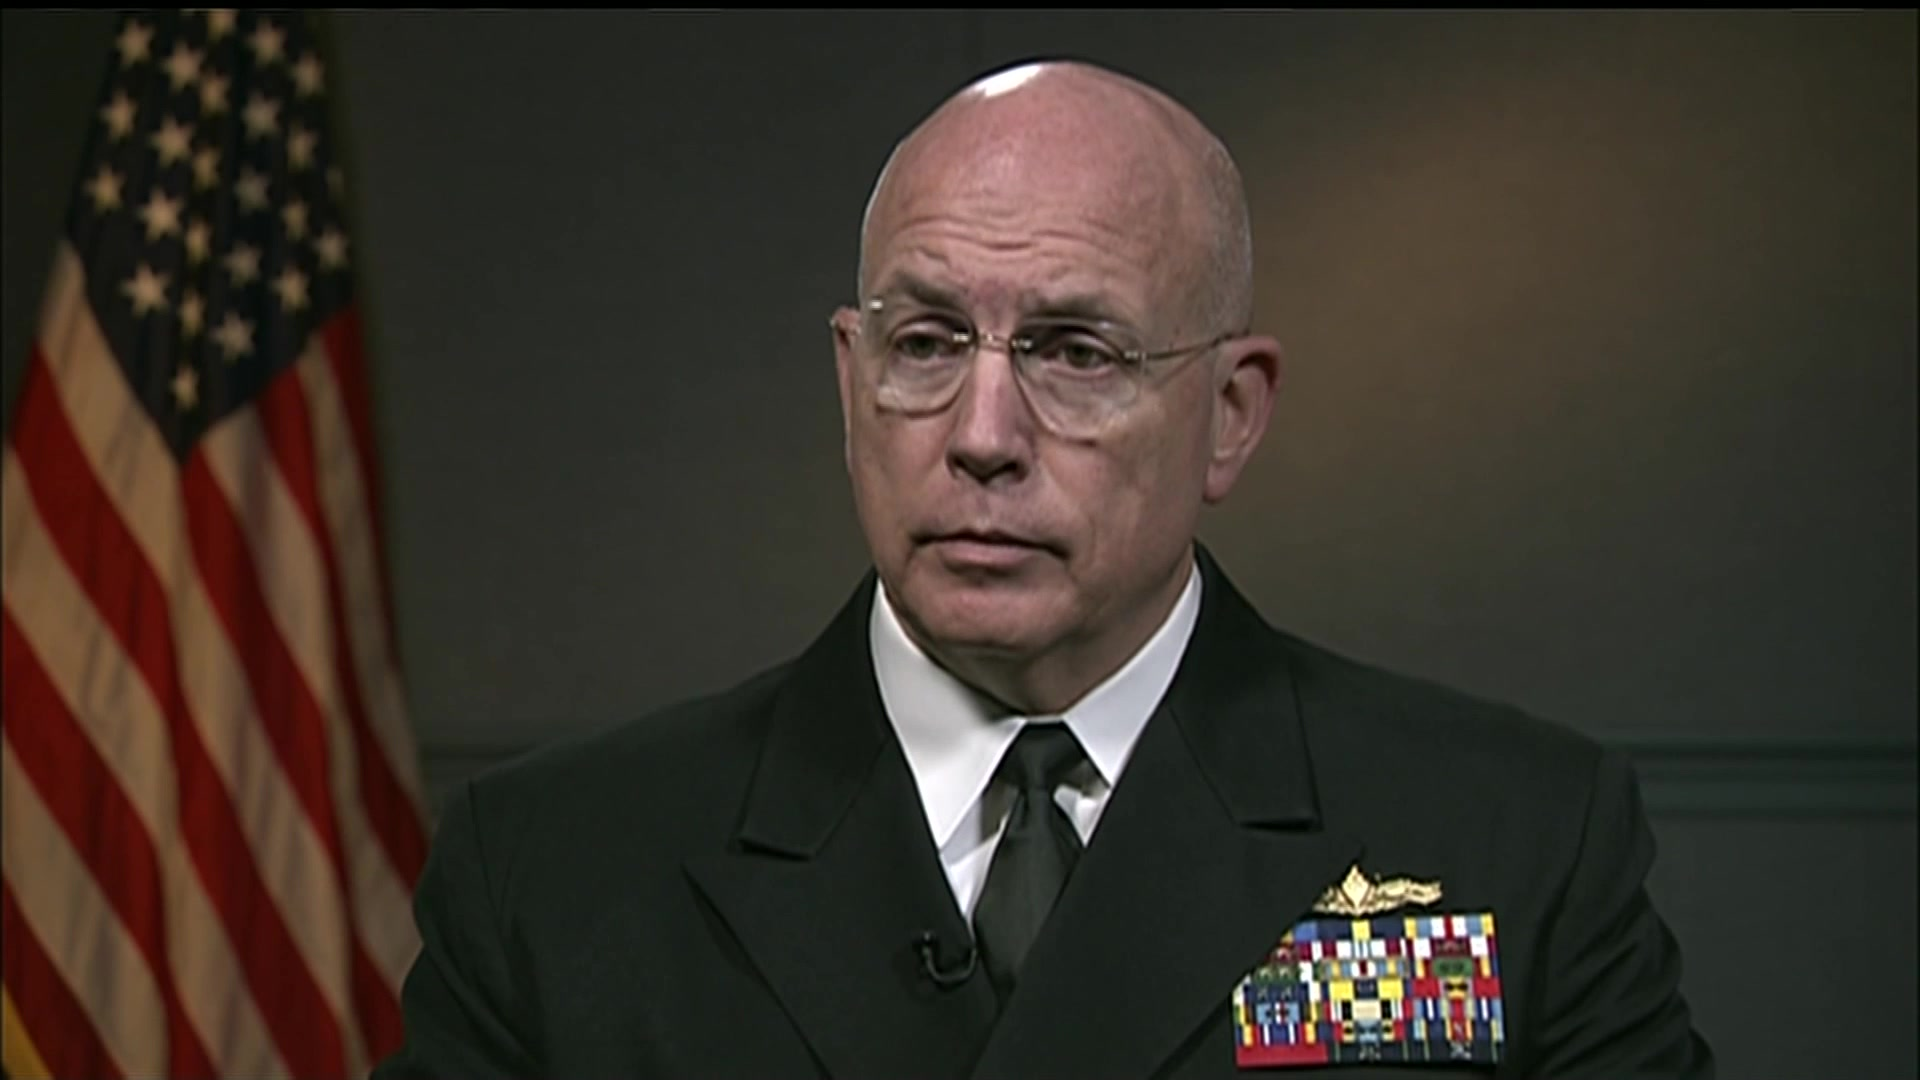 """Navy Adm. Kurt W. Tidd, commander of U.S. Southern Command, talks Southcom priorities, countering threat networks, military imperatives, and being a """"partner of choice"""" amongst allies, April 6, 2017."""